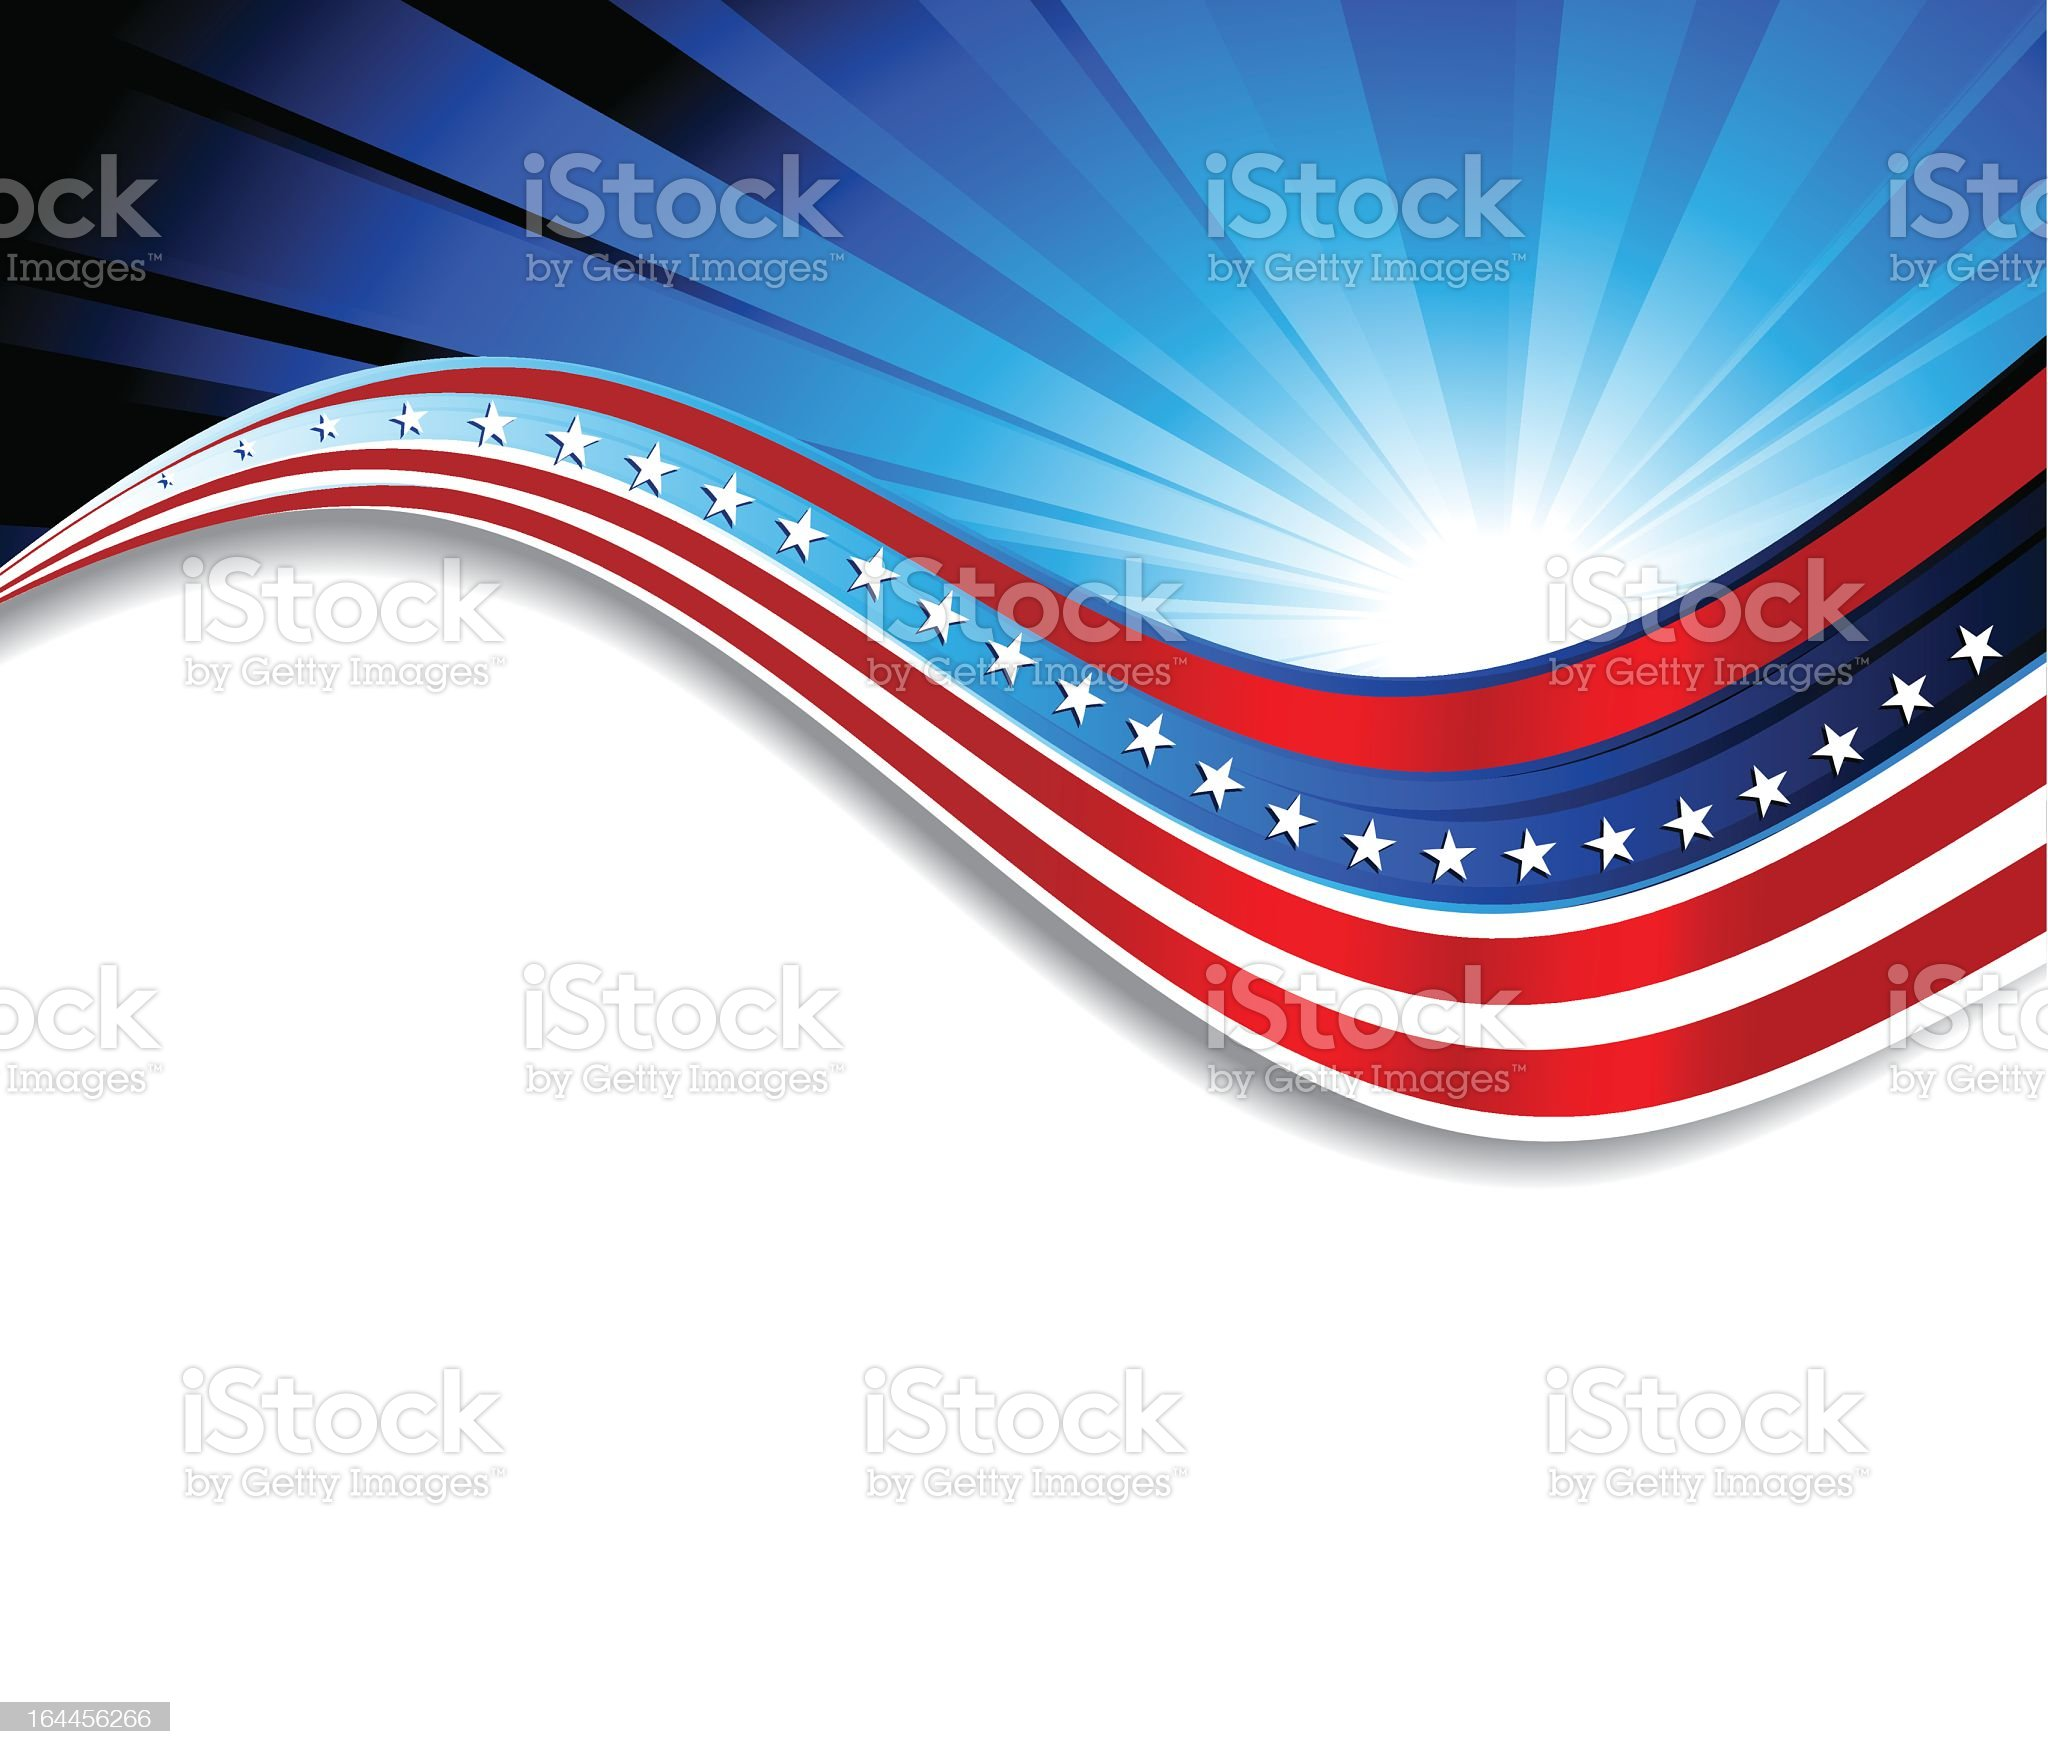 Abstract patriotic flag background royalty-free stock vector art